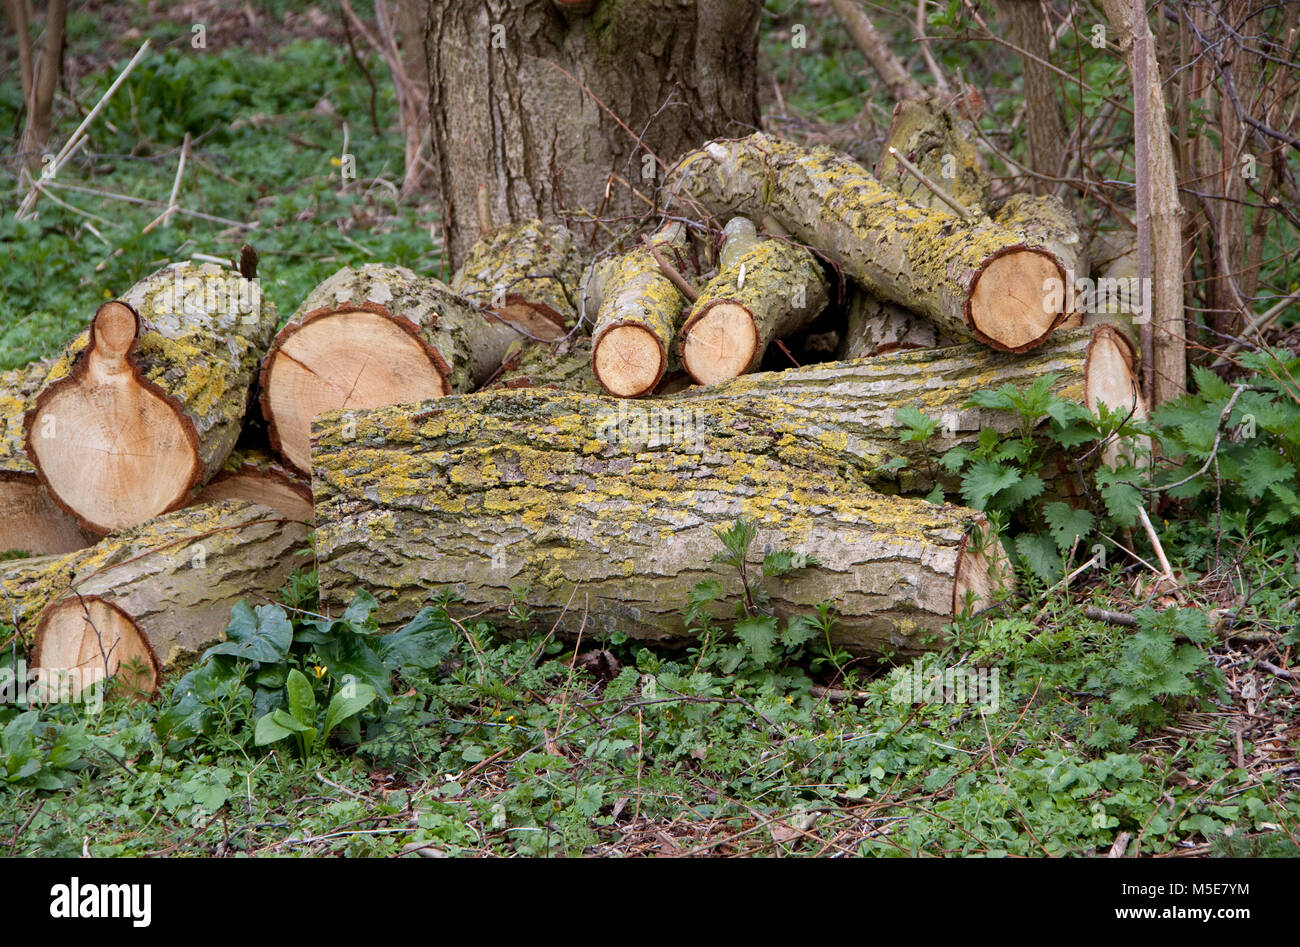 Small pile of cut logs - Stock Image